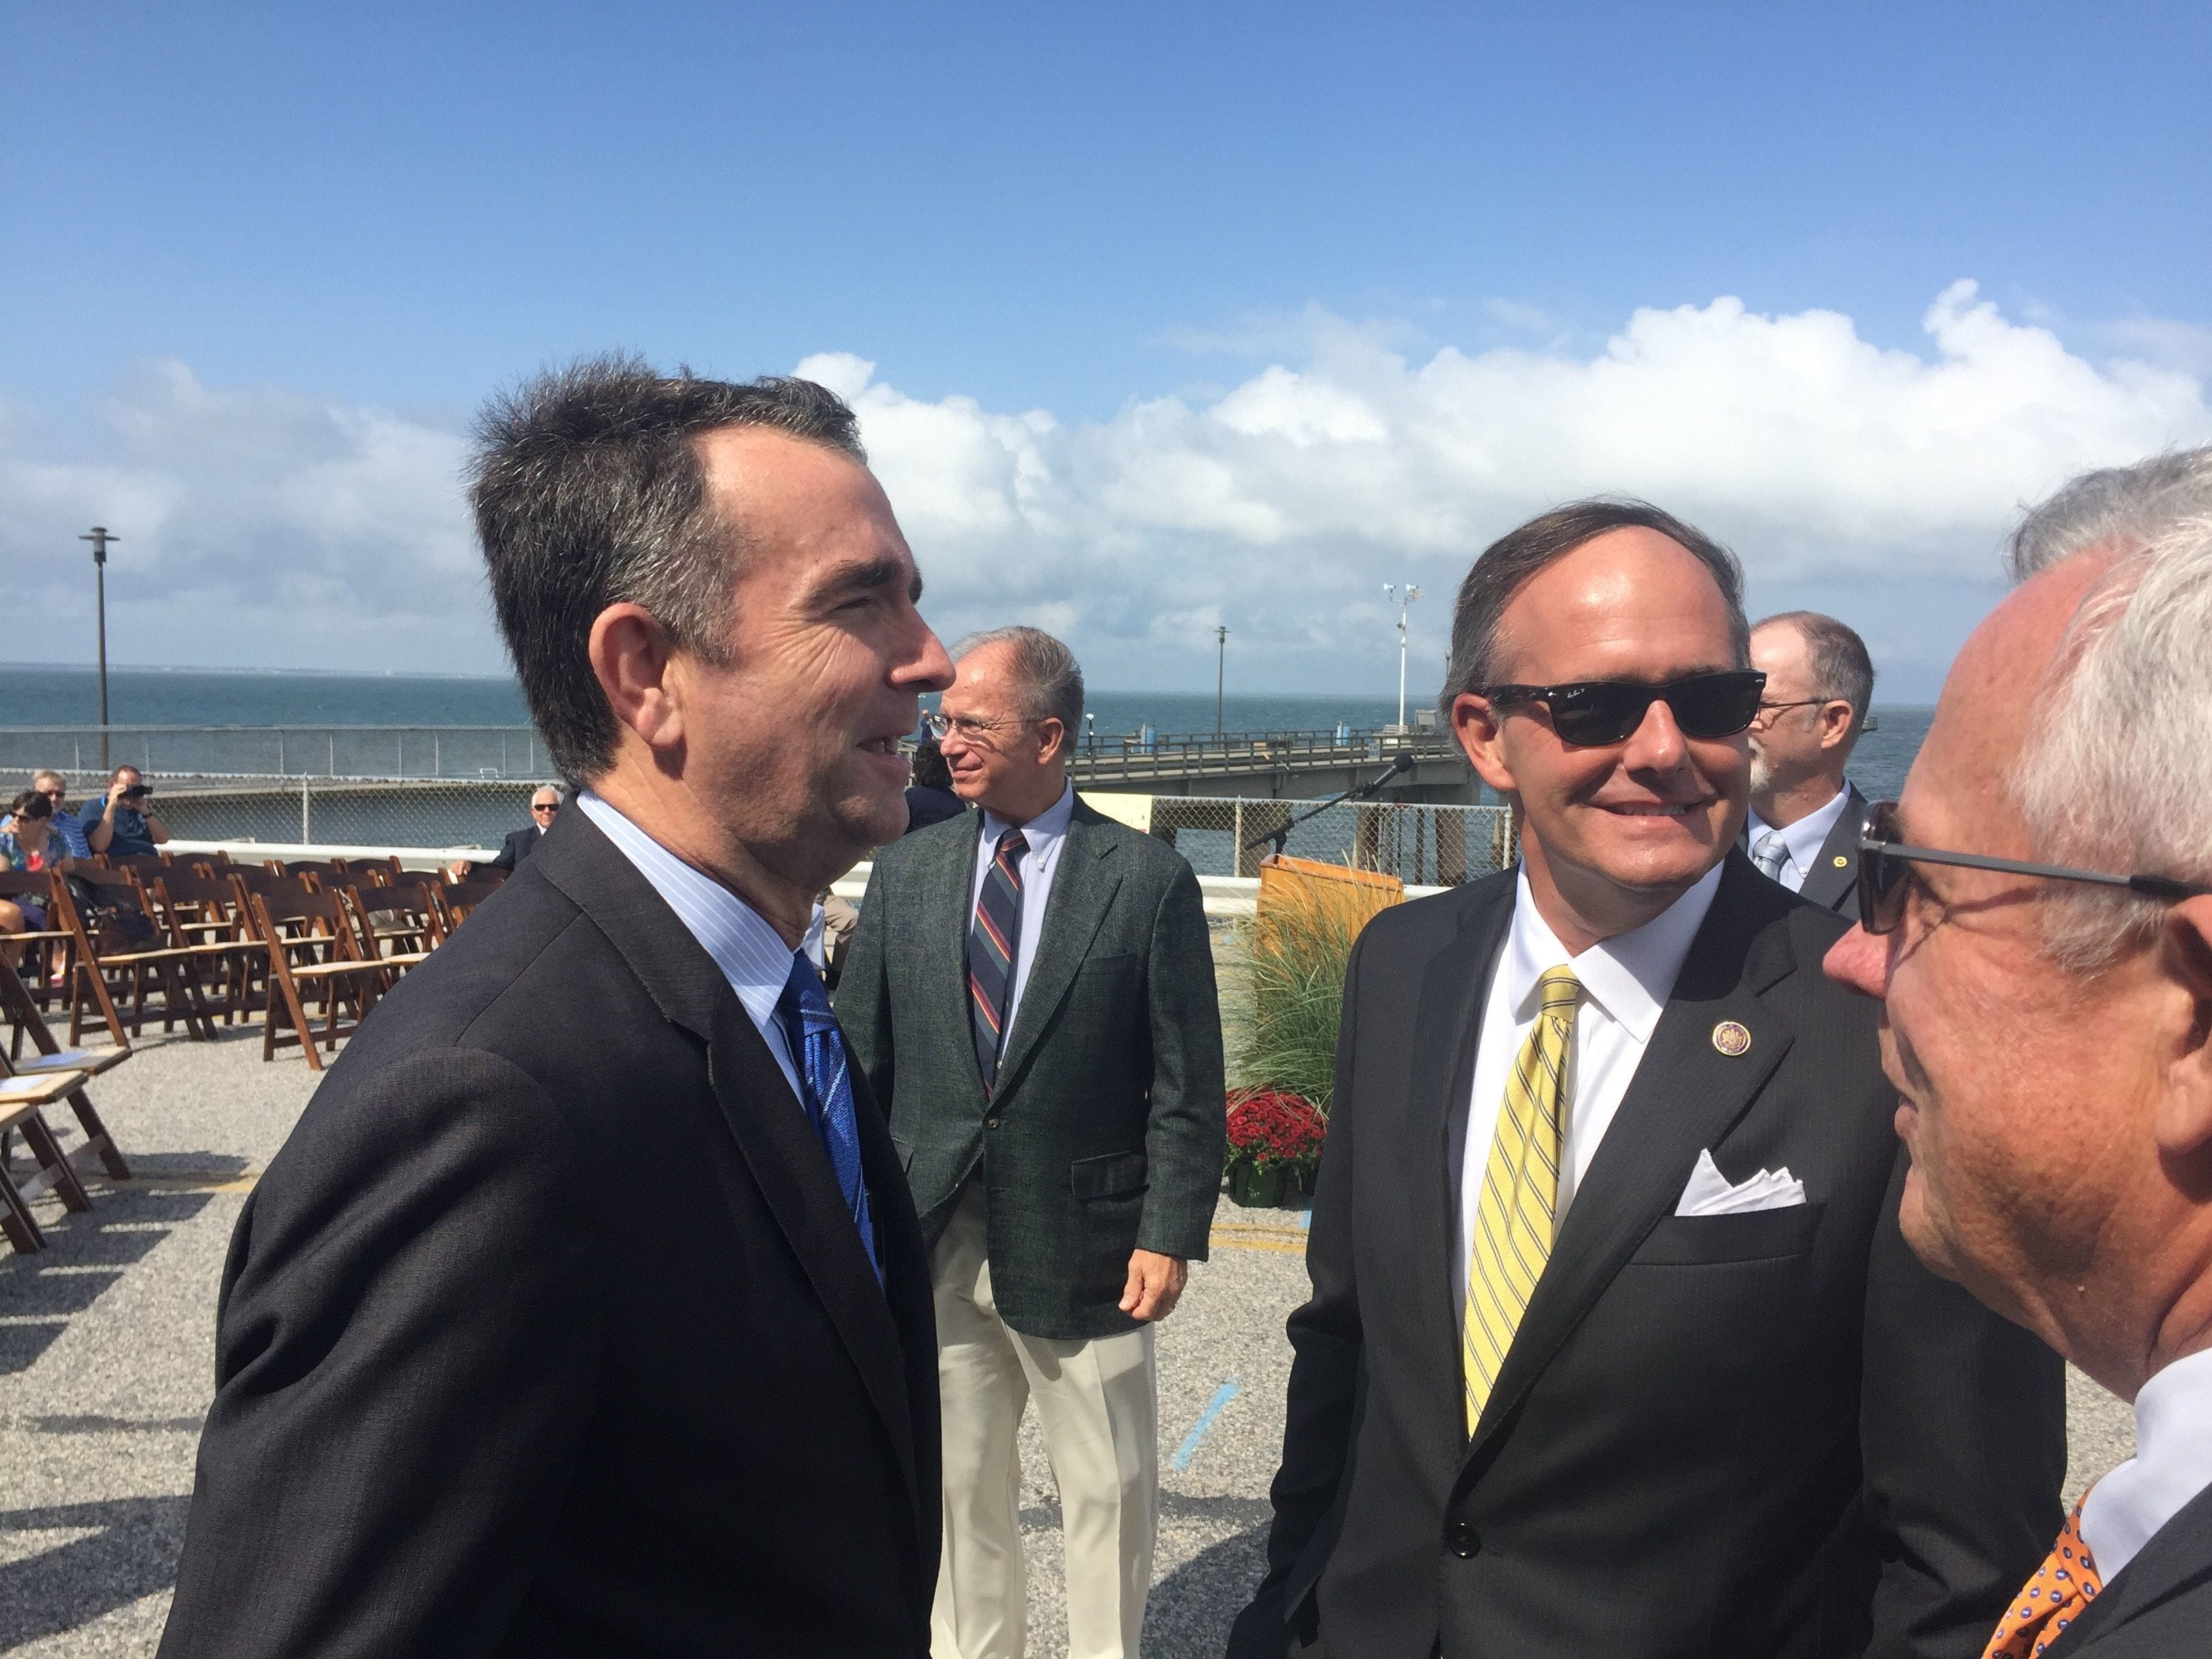 Lt. Gov. Ralph Northam, left, chats with Sen. Lynwood Lewis before a groundbreaking ceremony for the parallel tunnel project on the Chesapeake Bay Bridge-Tunnel on  Sept. 18, 2017.